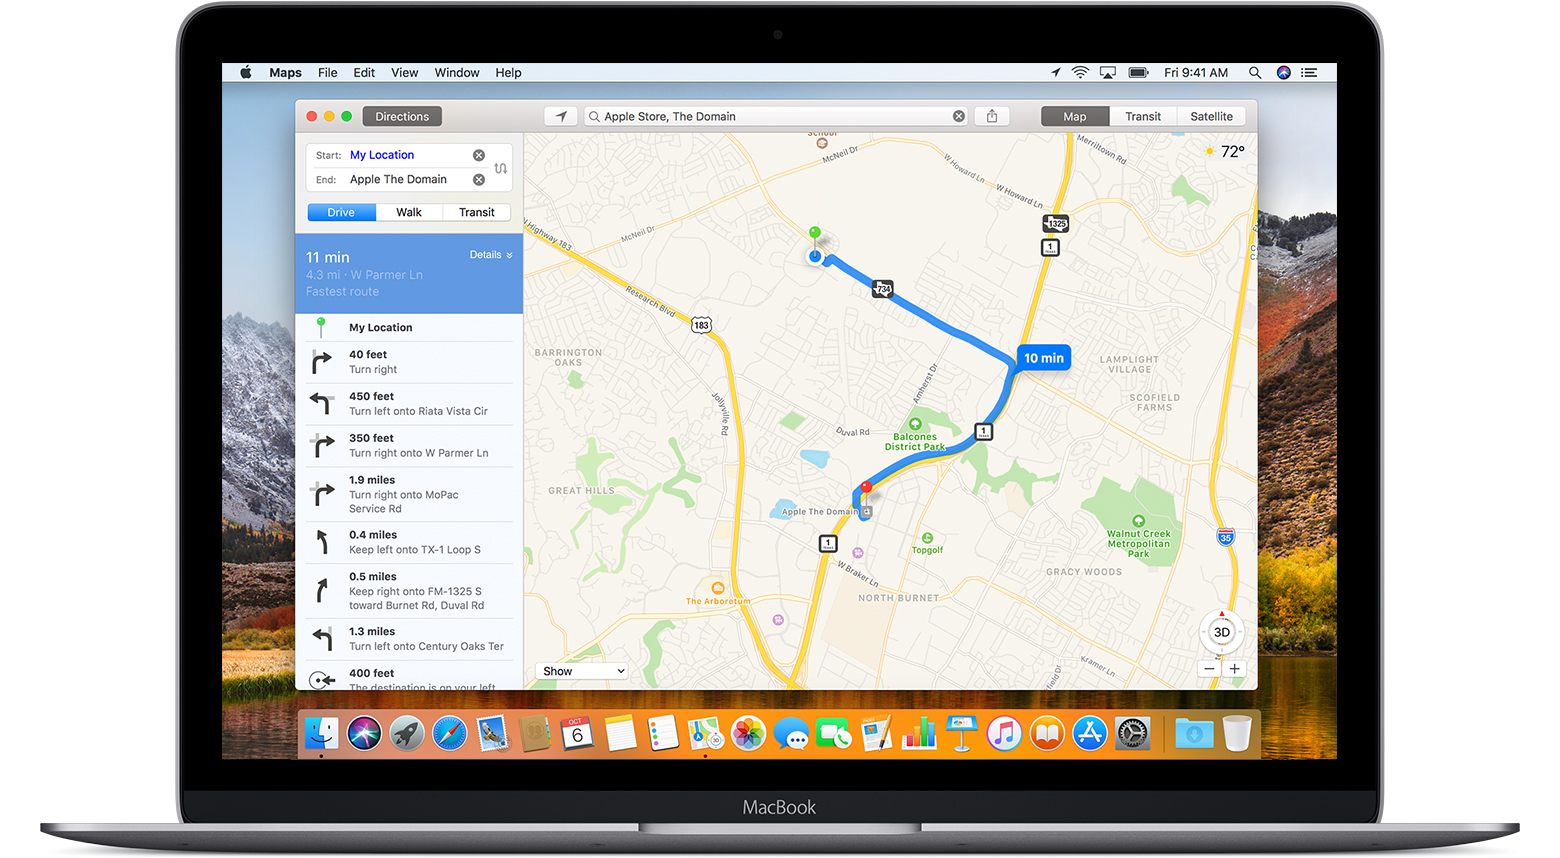 Apple Maps Public Transit Travel Now Available in Switzerland, Indoor Maps at Zurich Airport